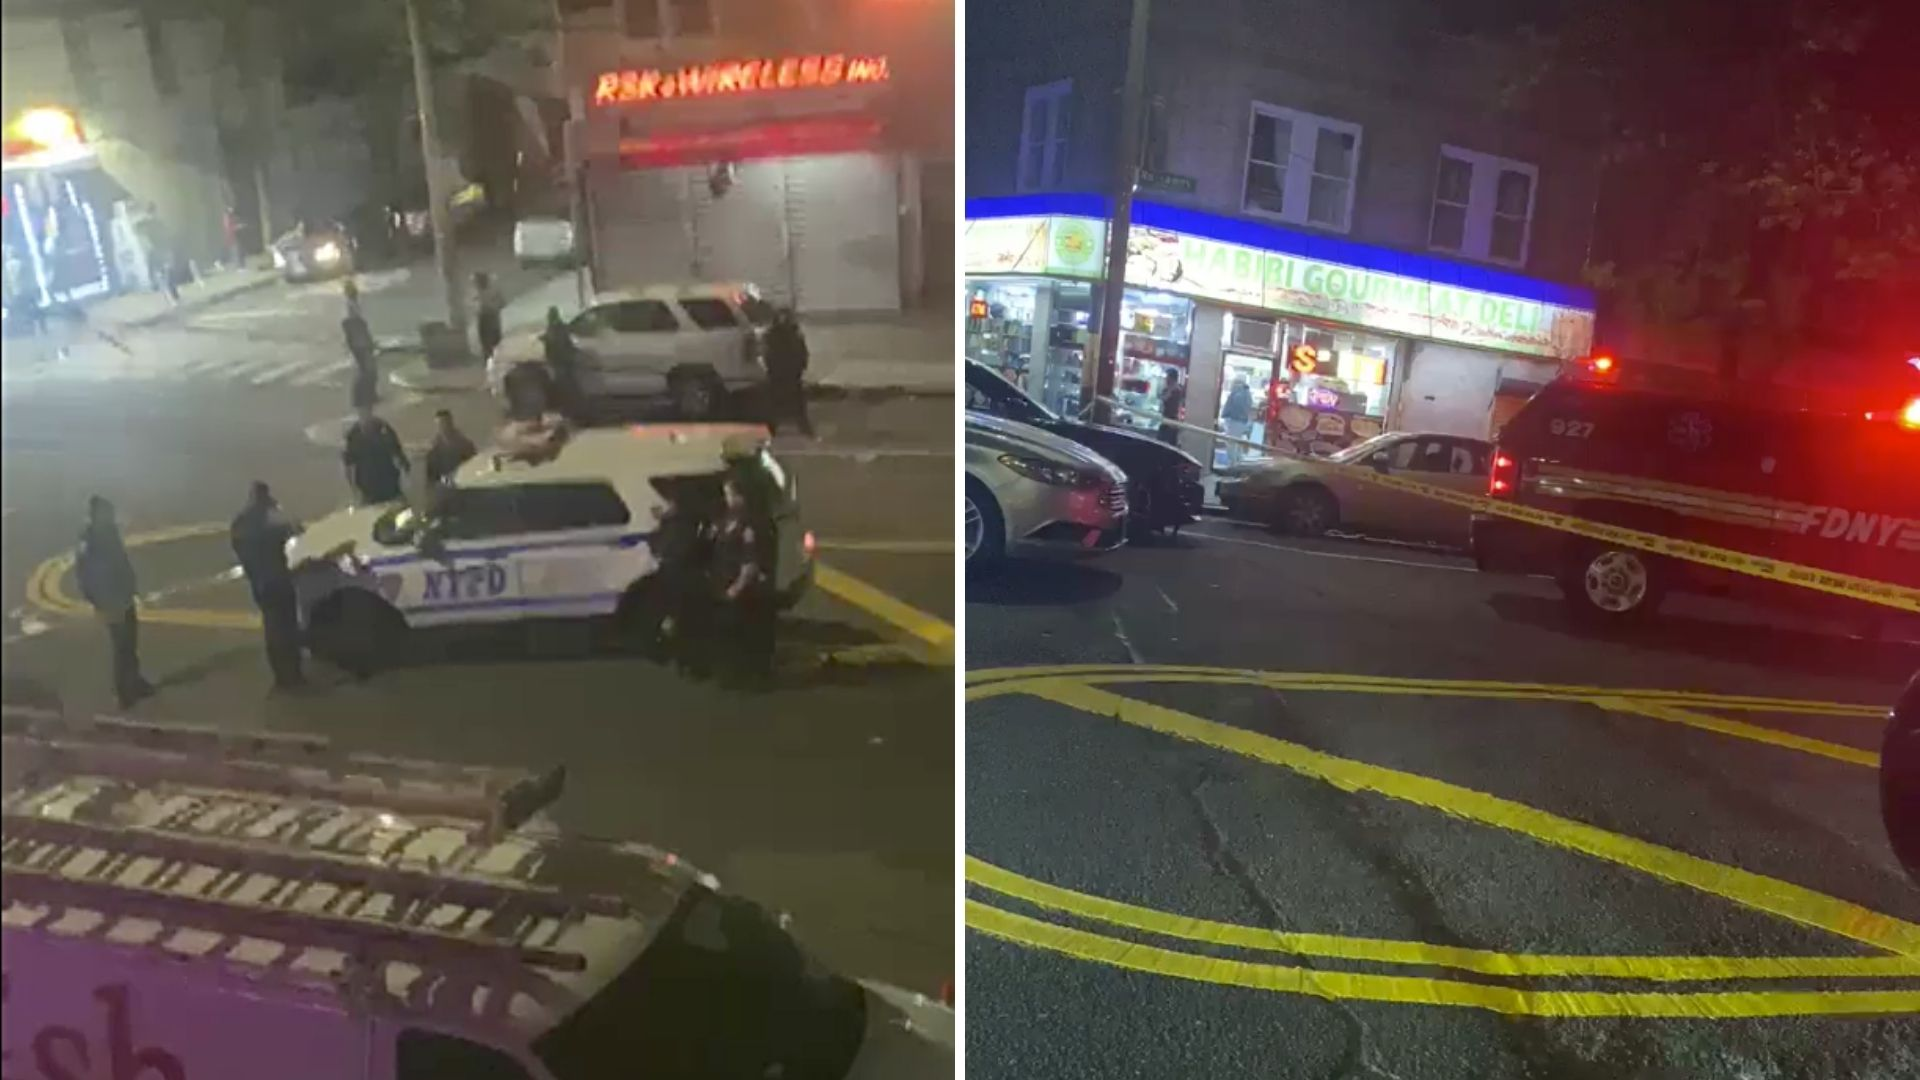 Police on the scene after two men were shot in South Ozone Park, Queens late Wednesday night, April 28, 2021, according to the NYPD. (Citizen App)